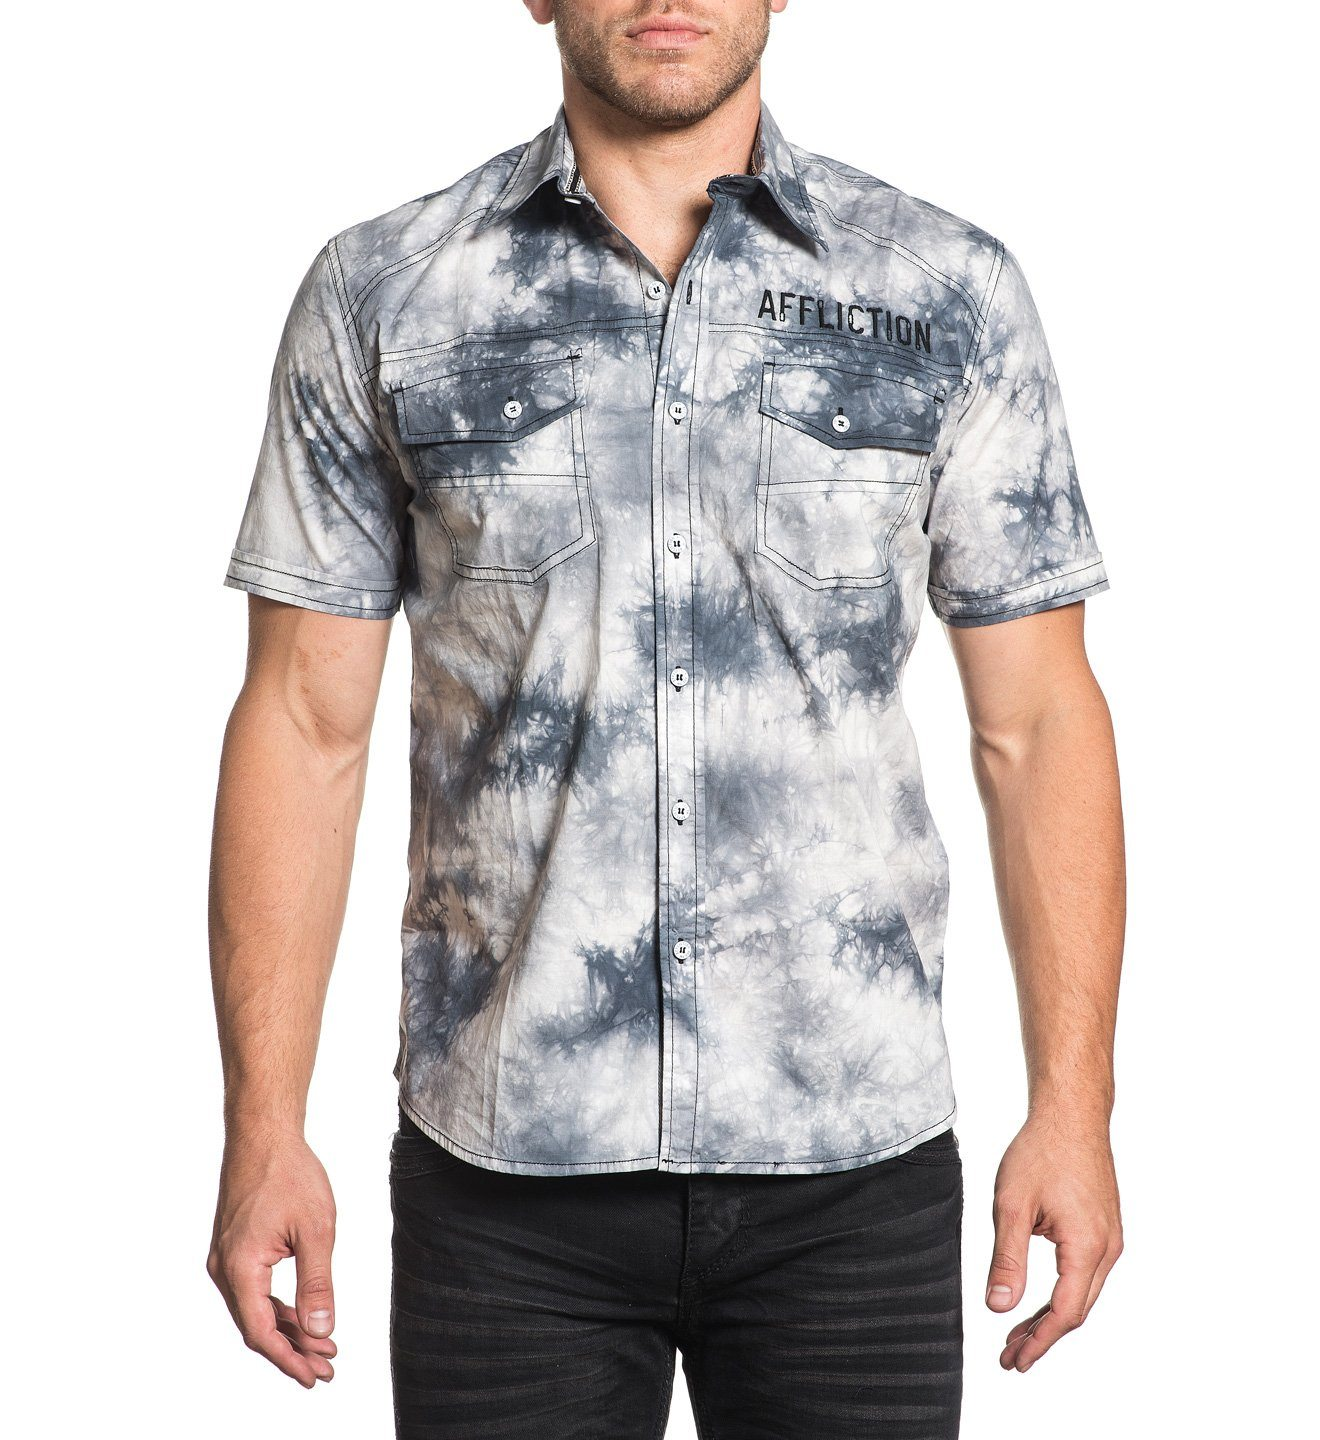 a7859533c3 Affliction Men s Short Sleeve Woven - Affliction Clothing